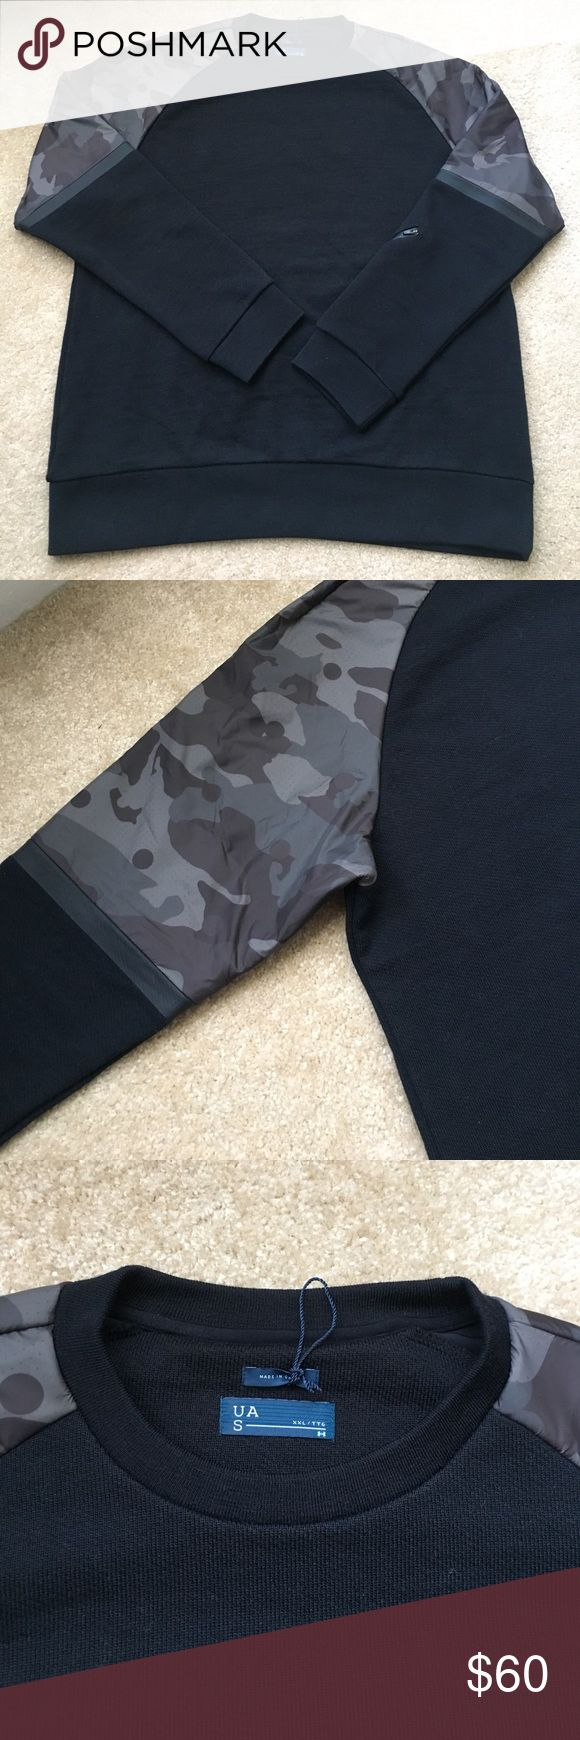 """Moving Sale Under Armour Camouflage Sweatshirt Men's UAS line by Under Armour.   Never worn.  Crew neck black sweatshirt with camouflage accent shoulders.  Zipper on left sleeve. Measures 30"""" from neck to hem. Under Armour Shirts Sweatshirts & Hoodies"""